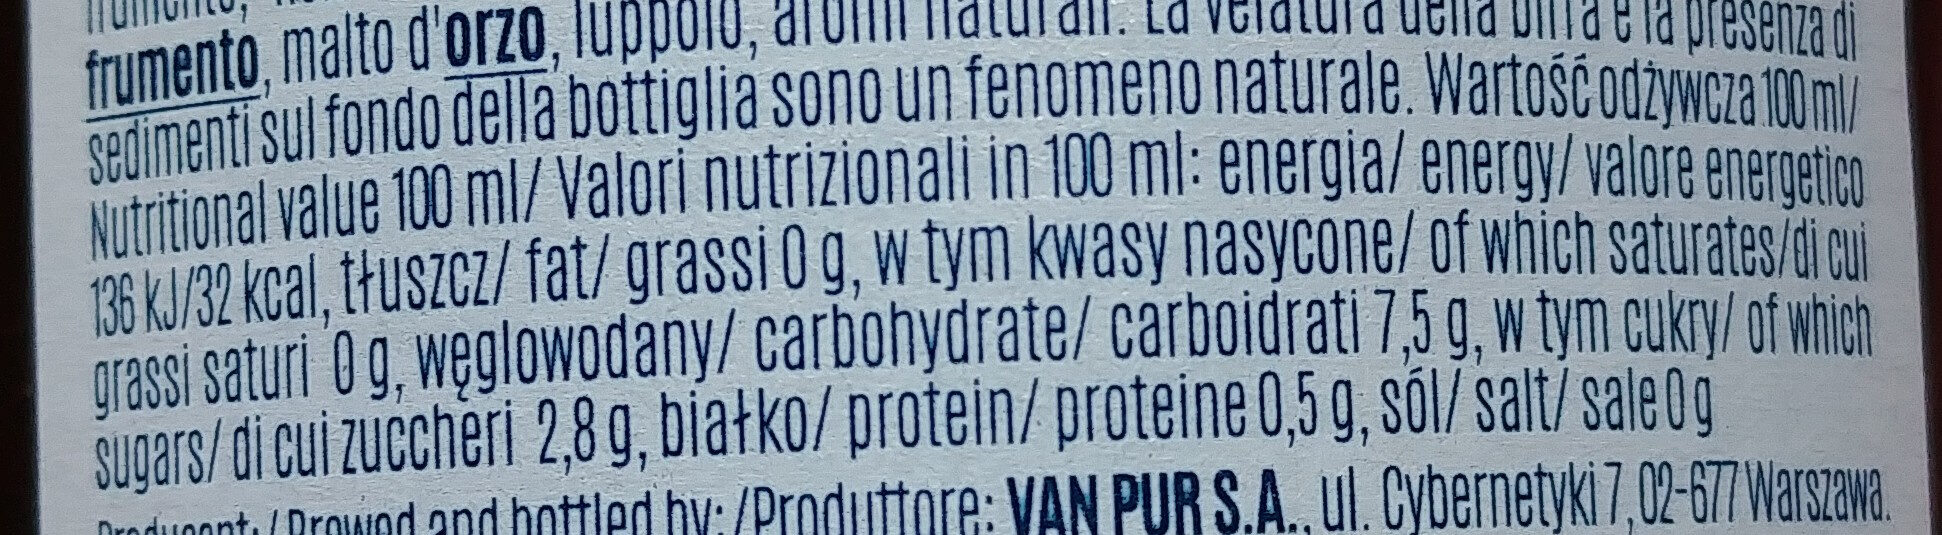 Bière sans alcool - Nutrition facts - it